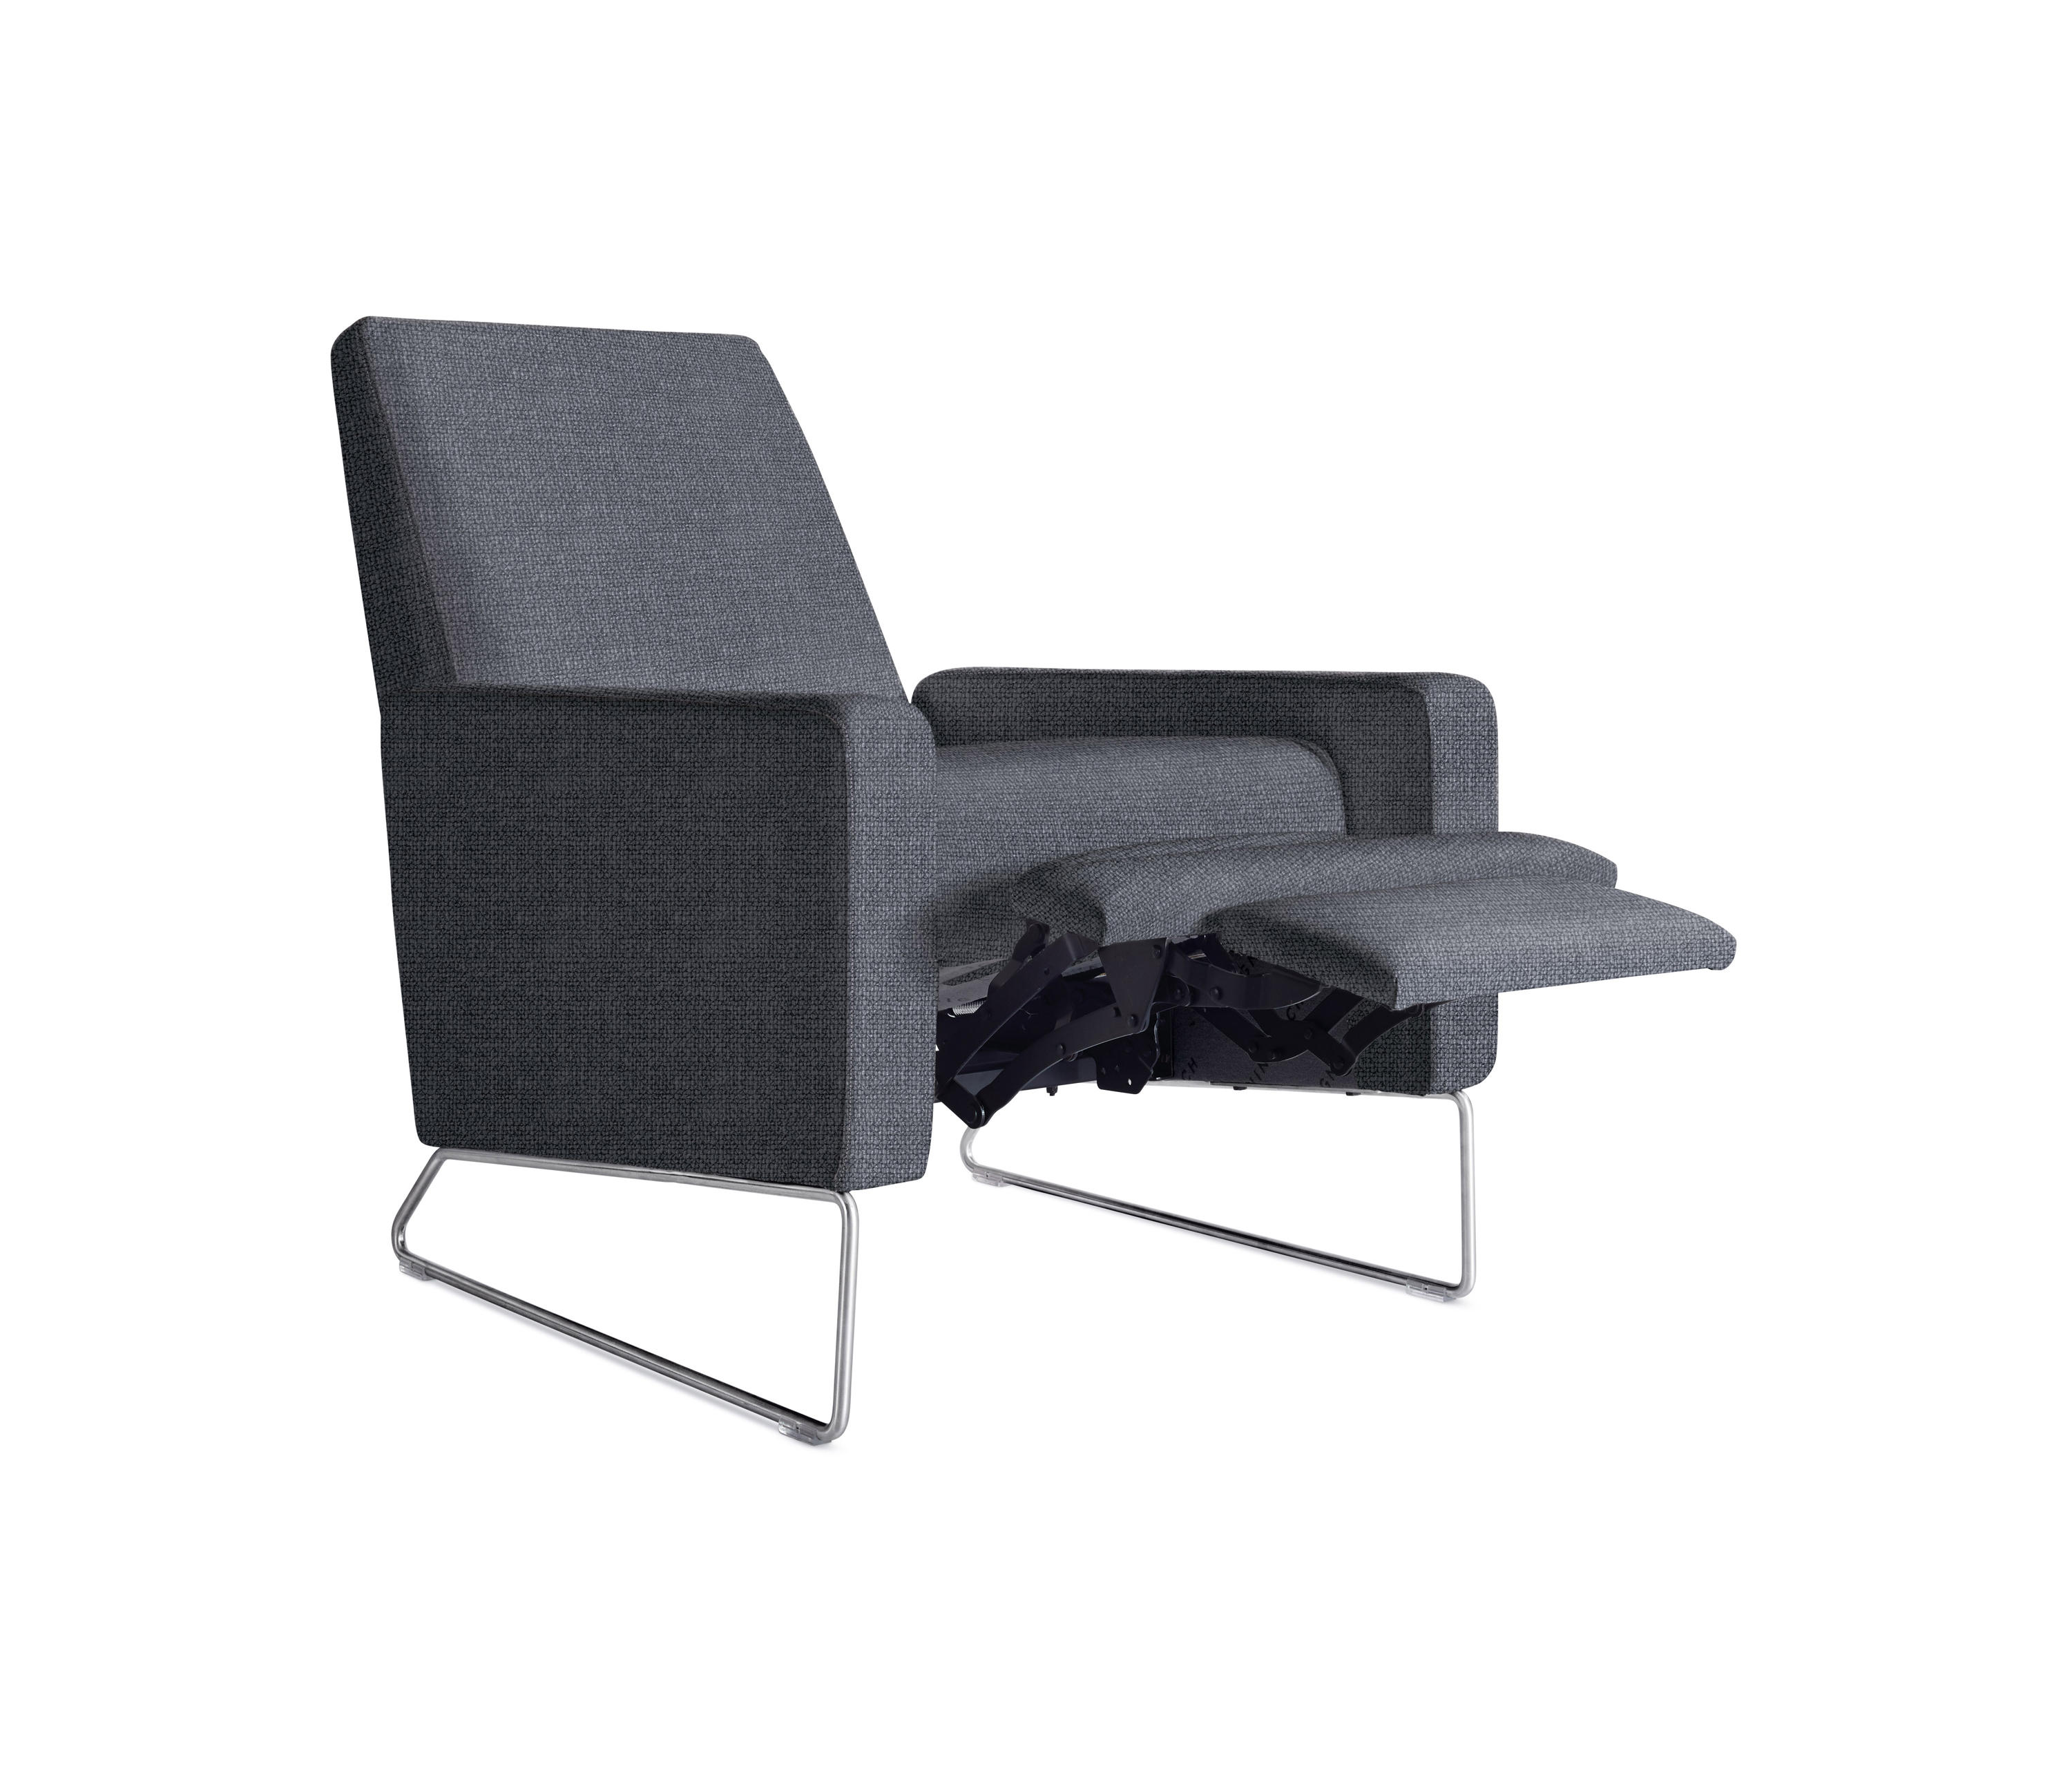 Awesome ... Flight Recliner In Fabric By Design Within Reach | Recliners ...